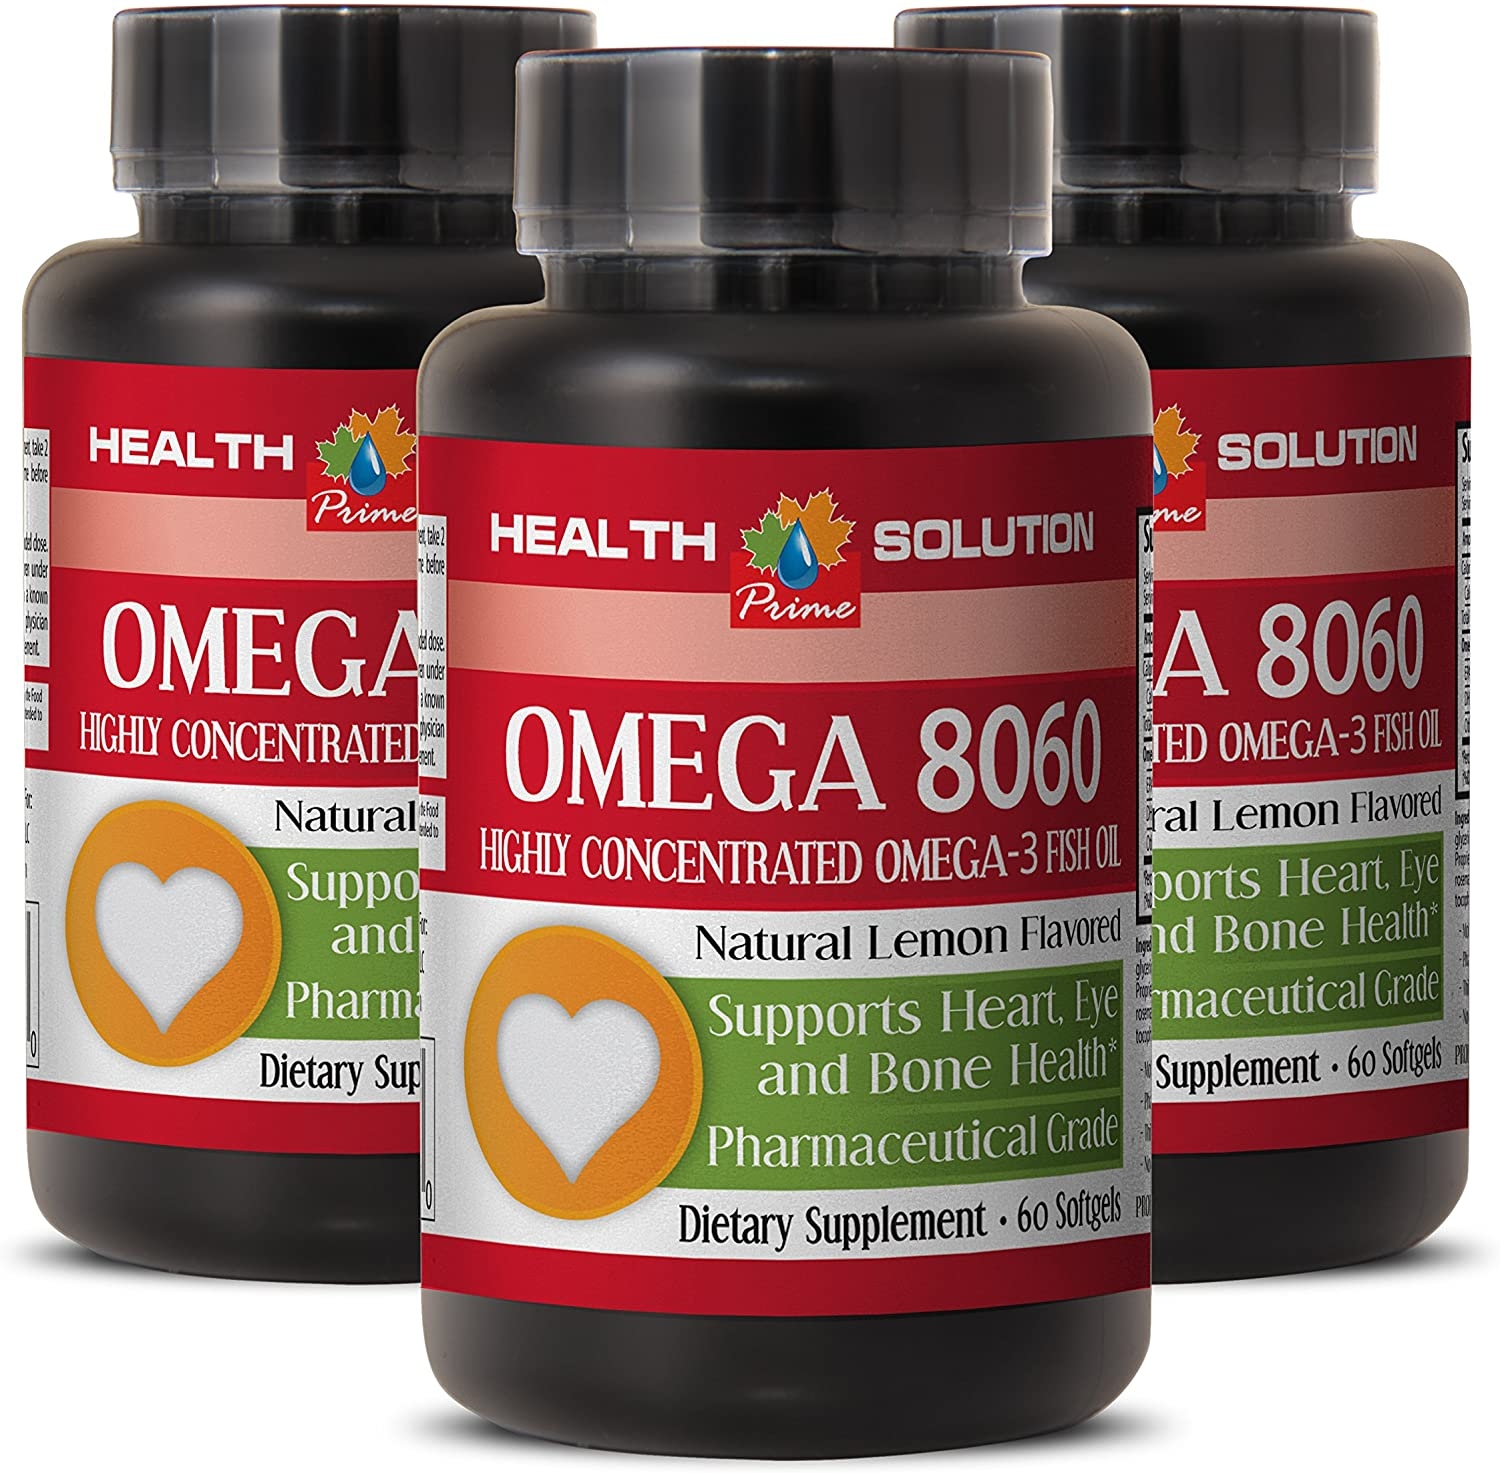 Omega with Vitamin d - Omega 8060 Omega-3 Fatty ACIDS - Boost The Immune System (3 Bottles)